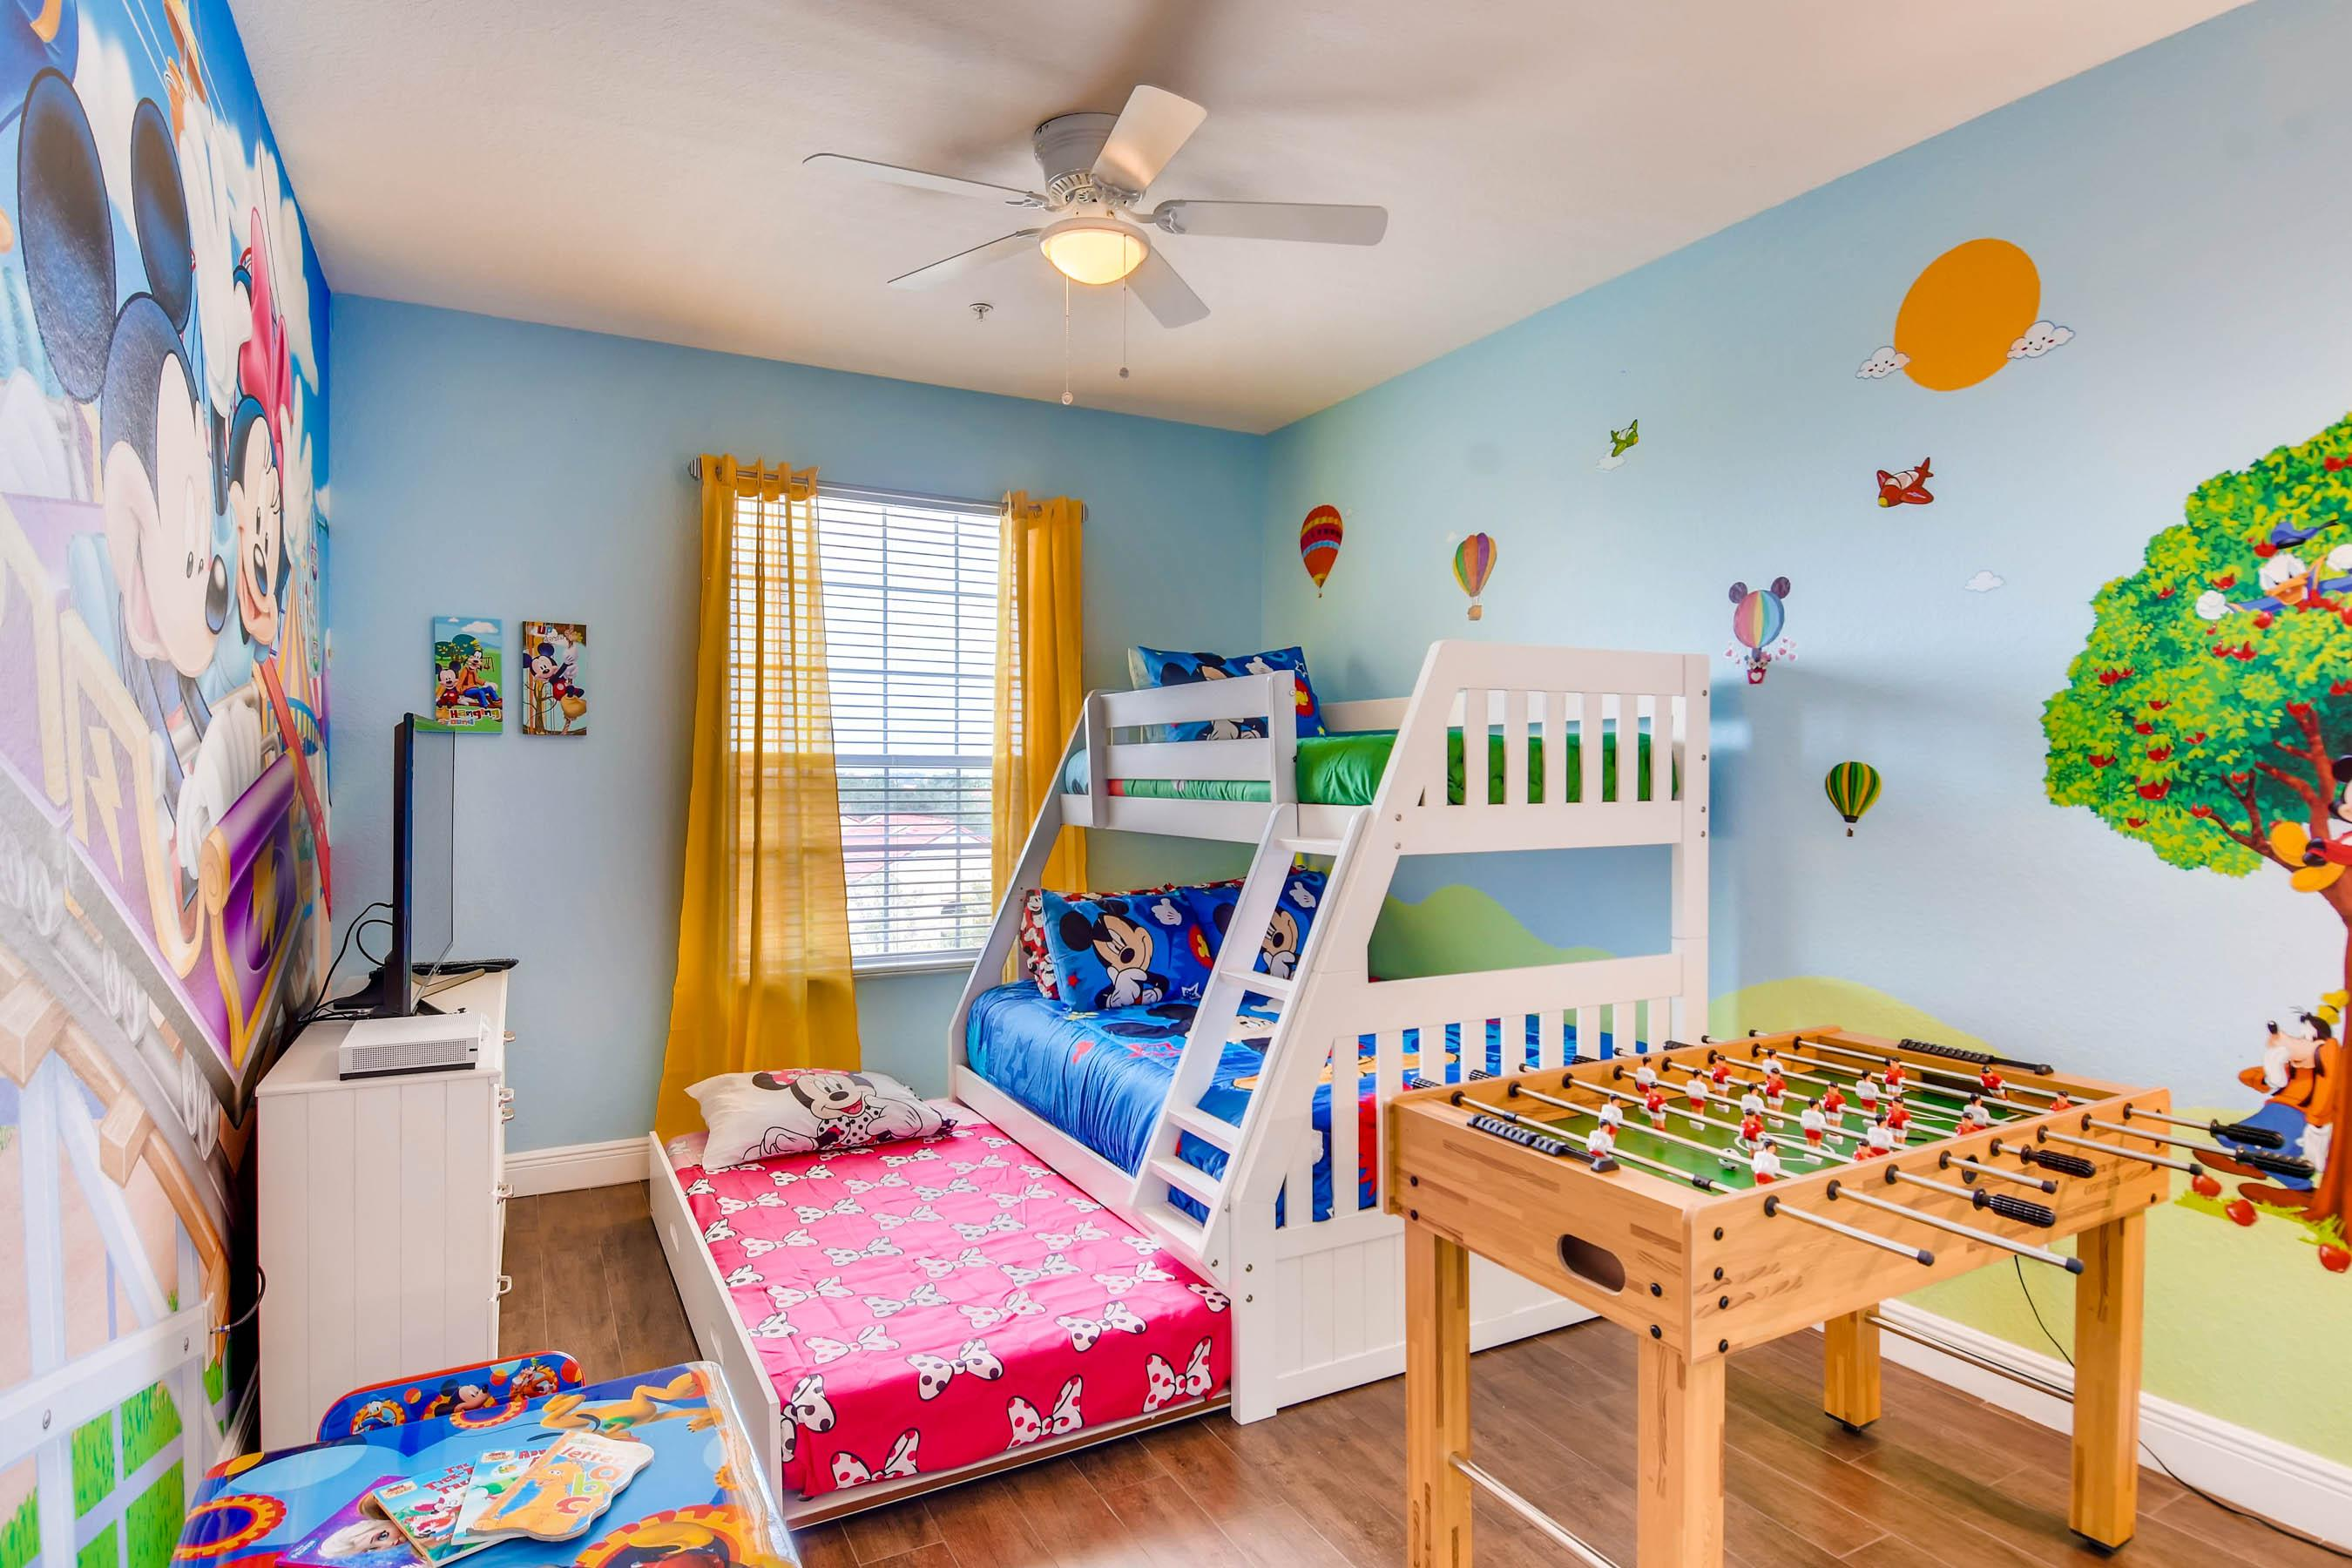 """Bunk bed sleeps 4 (twin + full + twin trundle).  50"""" 4K TV, XBox One S and more!"""